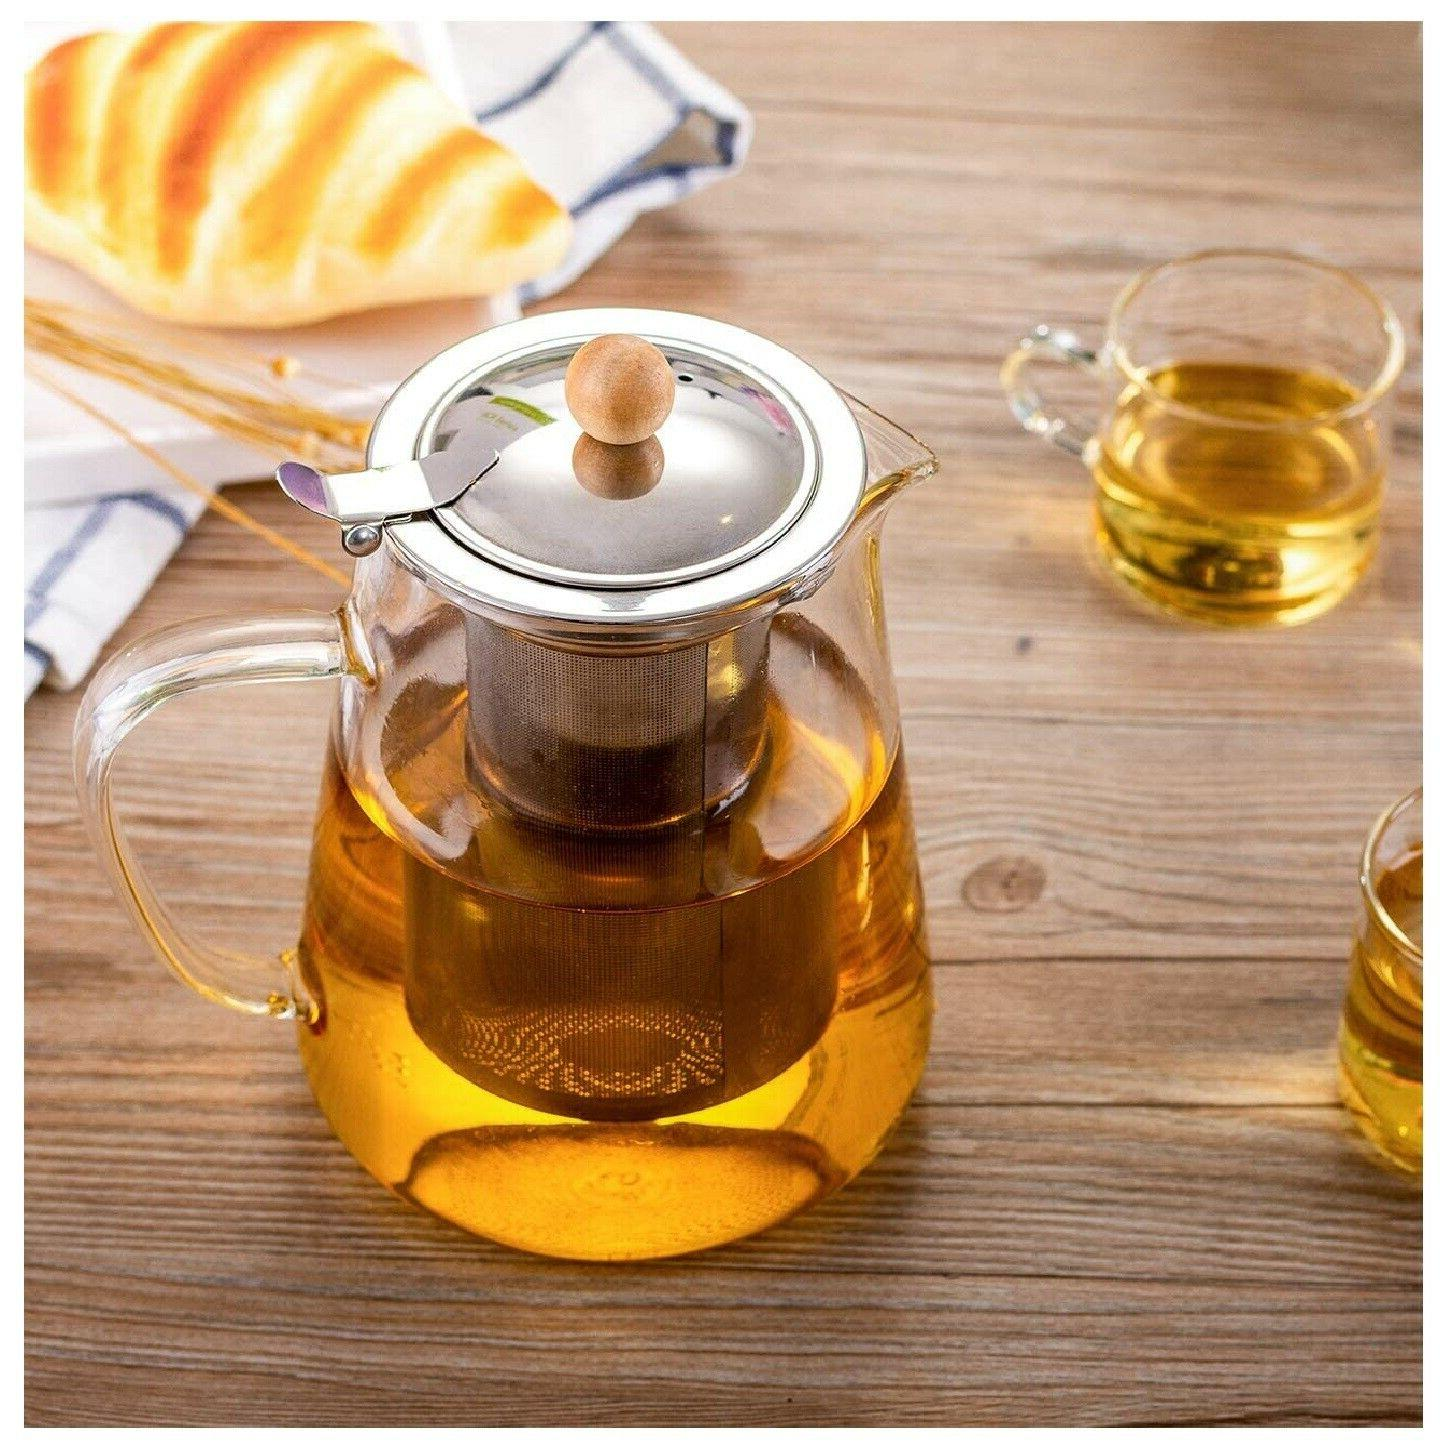 950ml/32oz Glass Teapot kettle Pot